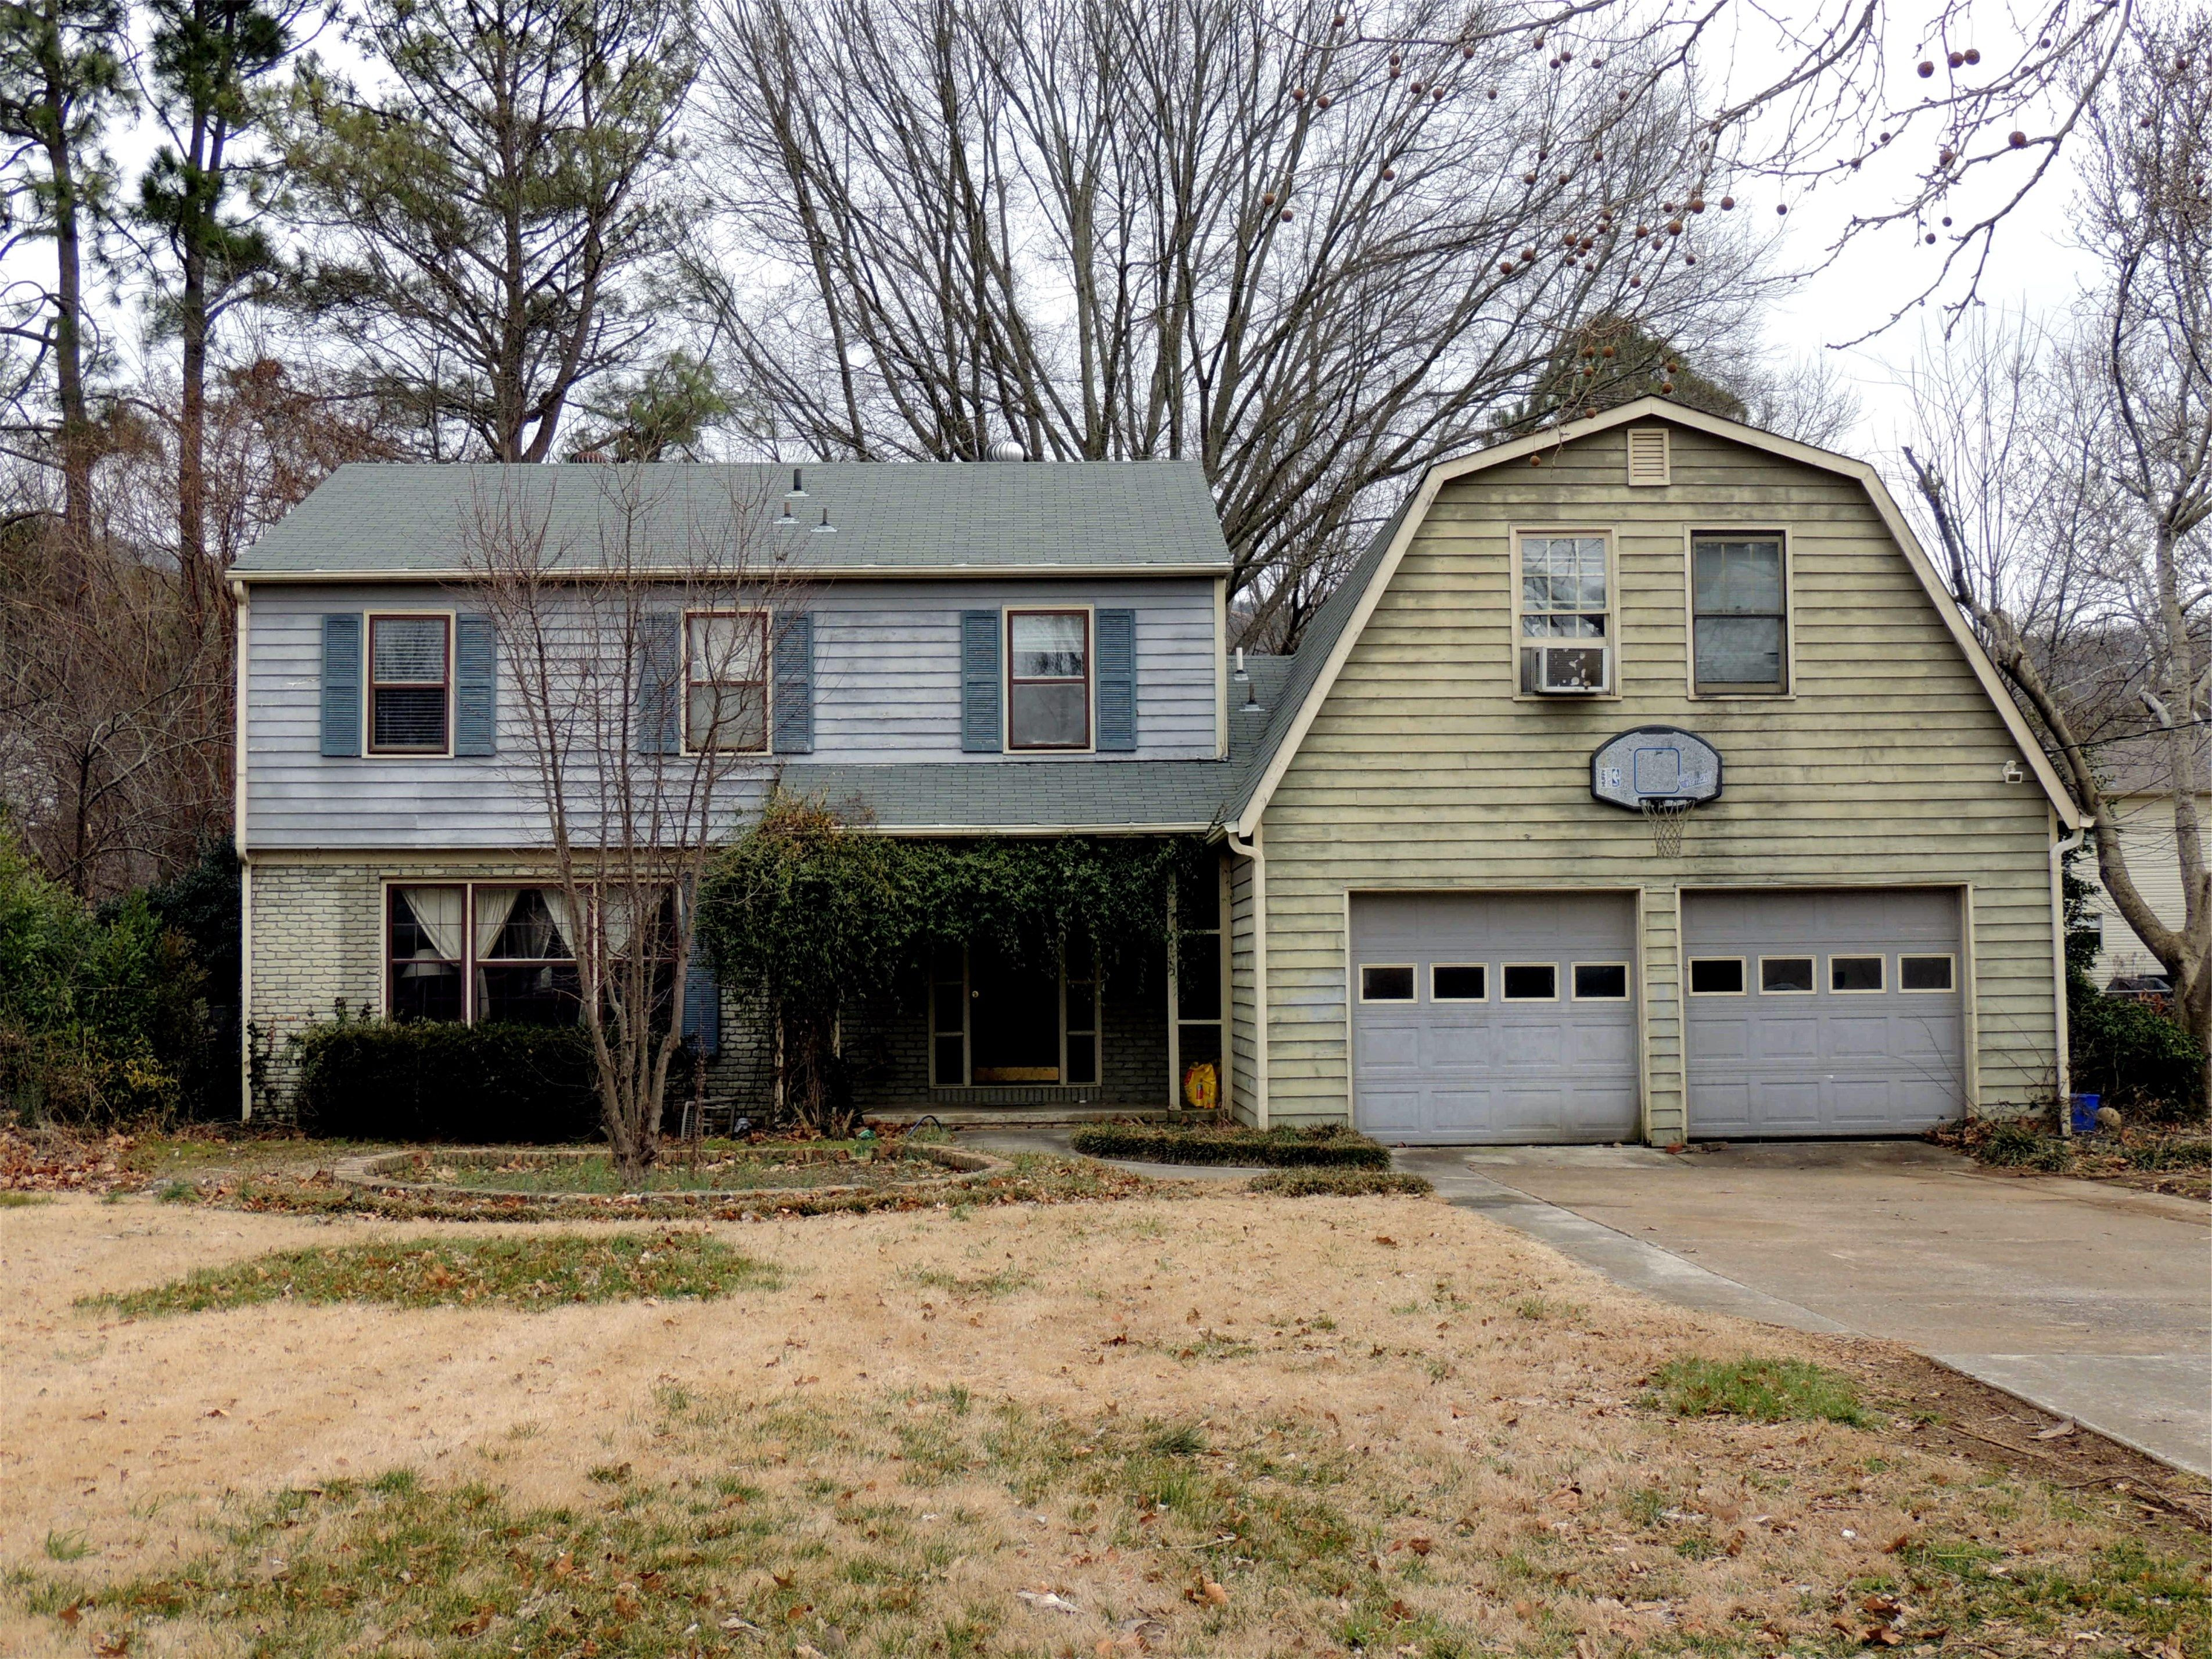 This 2527 sq foot house has 4 bedrooms and a bonus room above the garage.  Bonus room is heated/cooled but also has window unit.  Room has 2 closets plus attic space.  Great for 5th bedroom, playroom, office!